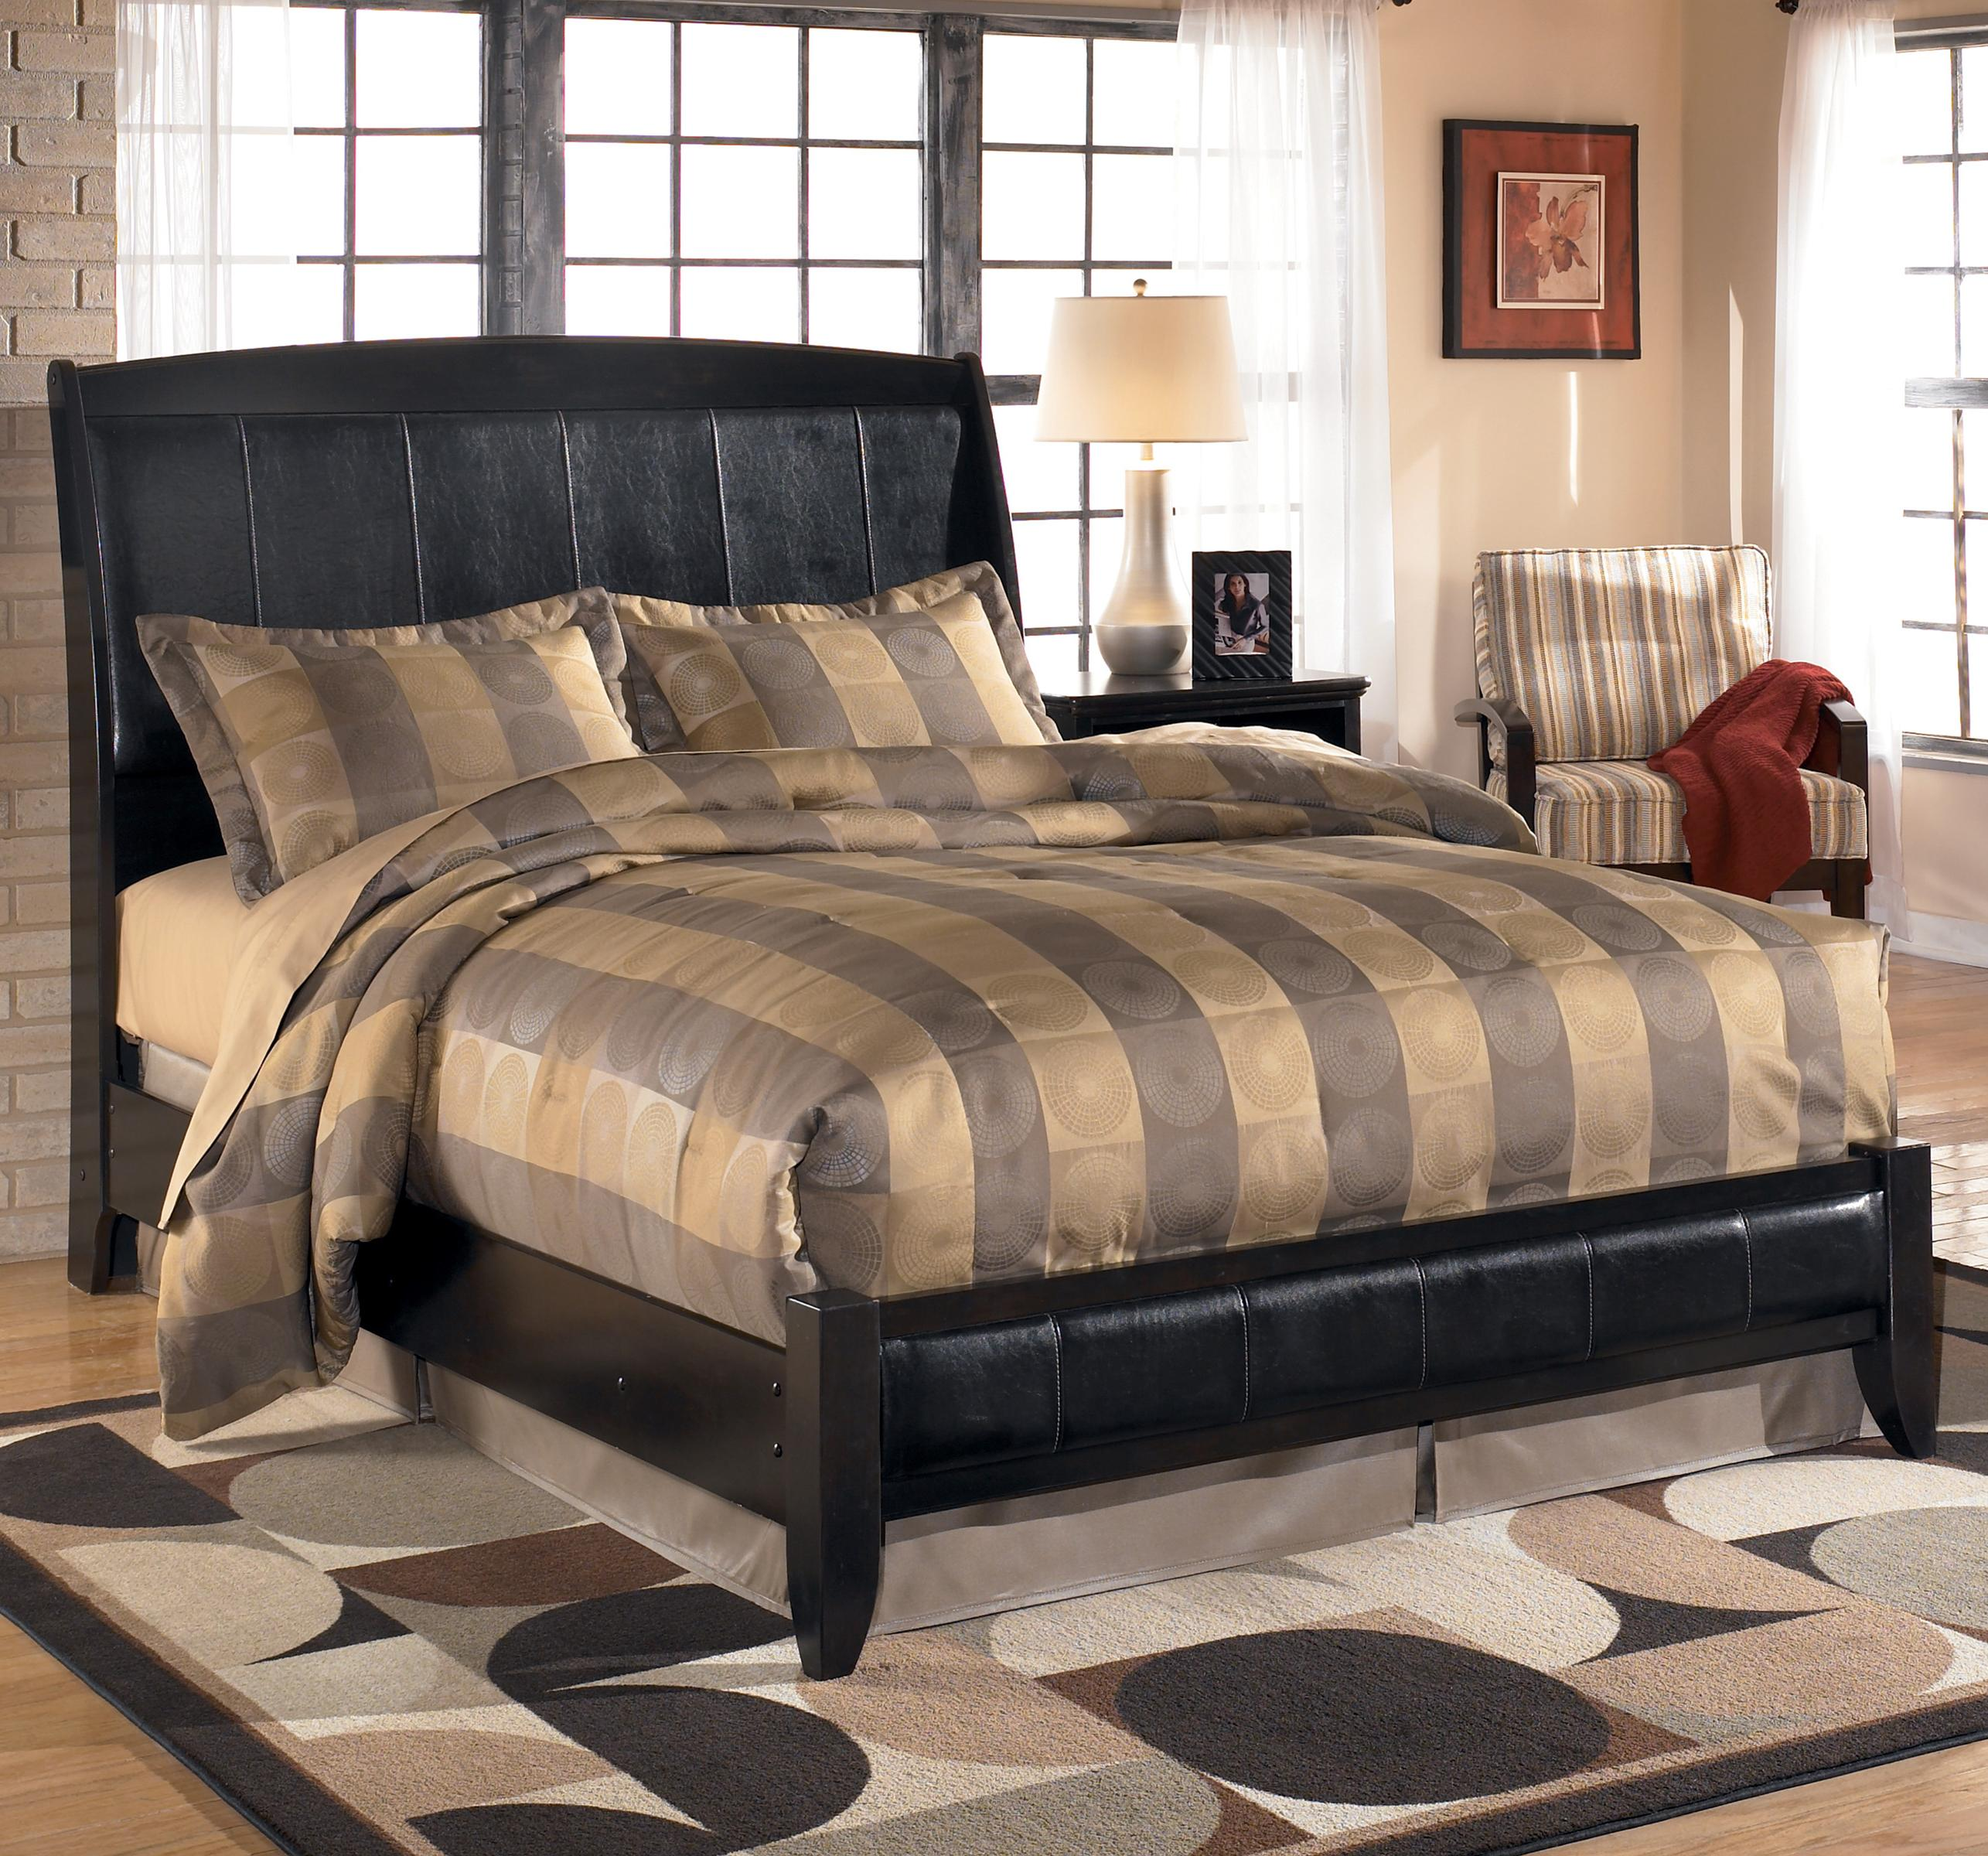 Queen Upholstered Sleigh Headboard With Platform Style Footboard By Signature Design By Ashley